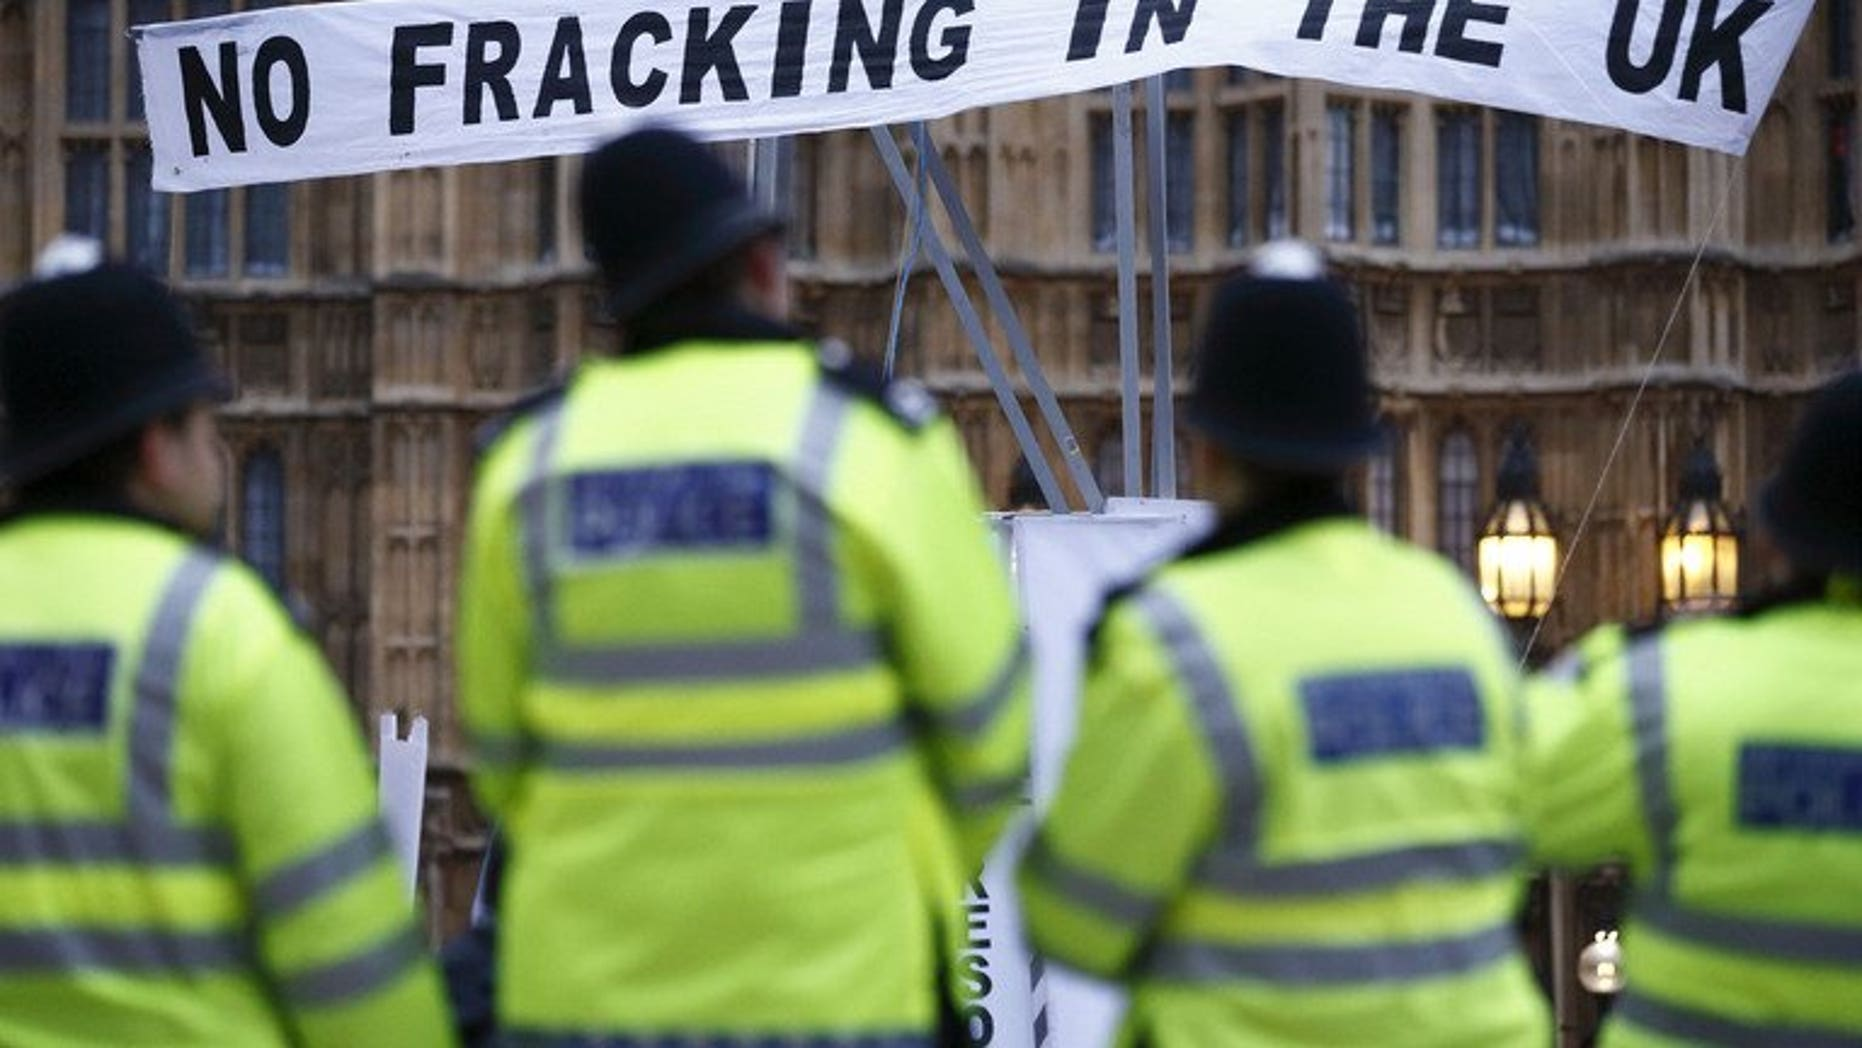 British police secure the area near protesters against fracking in London on December 1, 2012. Sixteen protesters were arrested as police broke up a blockade against exploratory drilling by a fracking company in southern England.